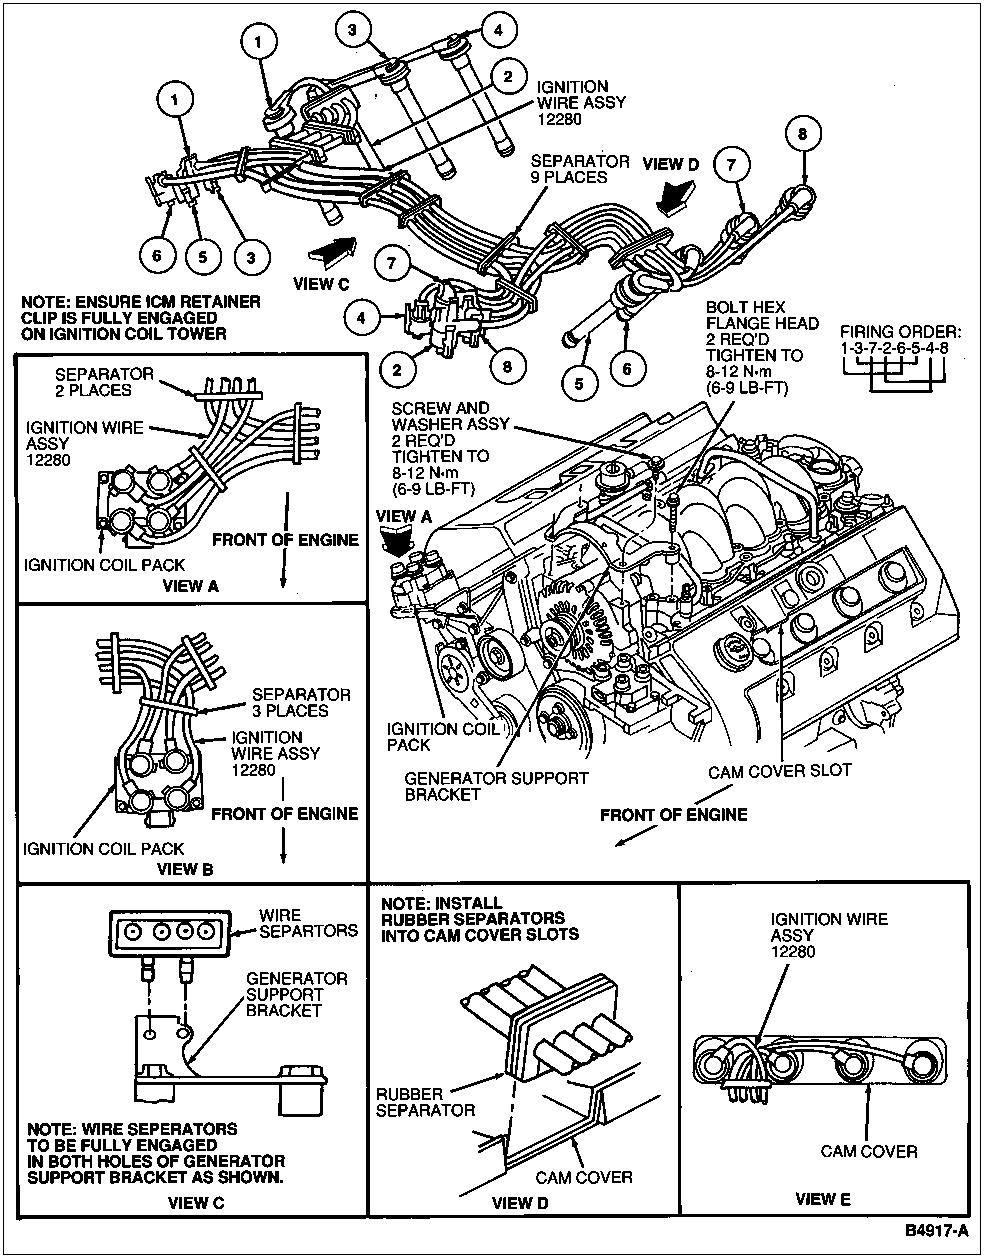 Pleasing Lincoln Town Car Wiring Diagram Moreover 94 Lincoln Continental Wiring Cloud Ymoonsalvmohammedshrineorg